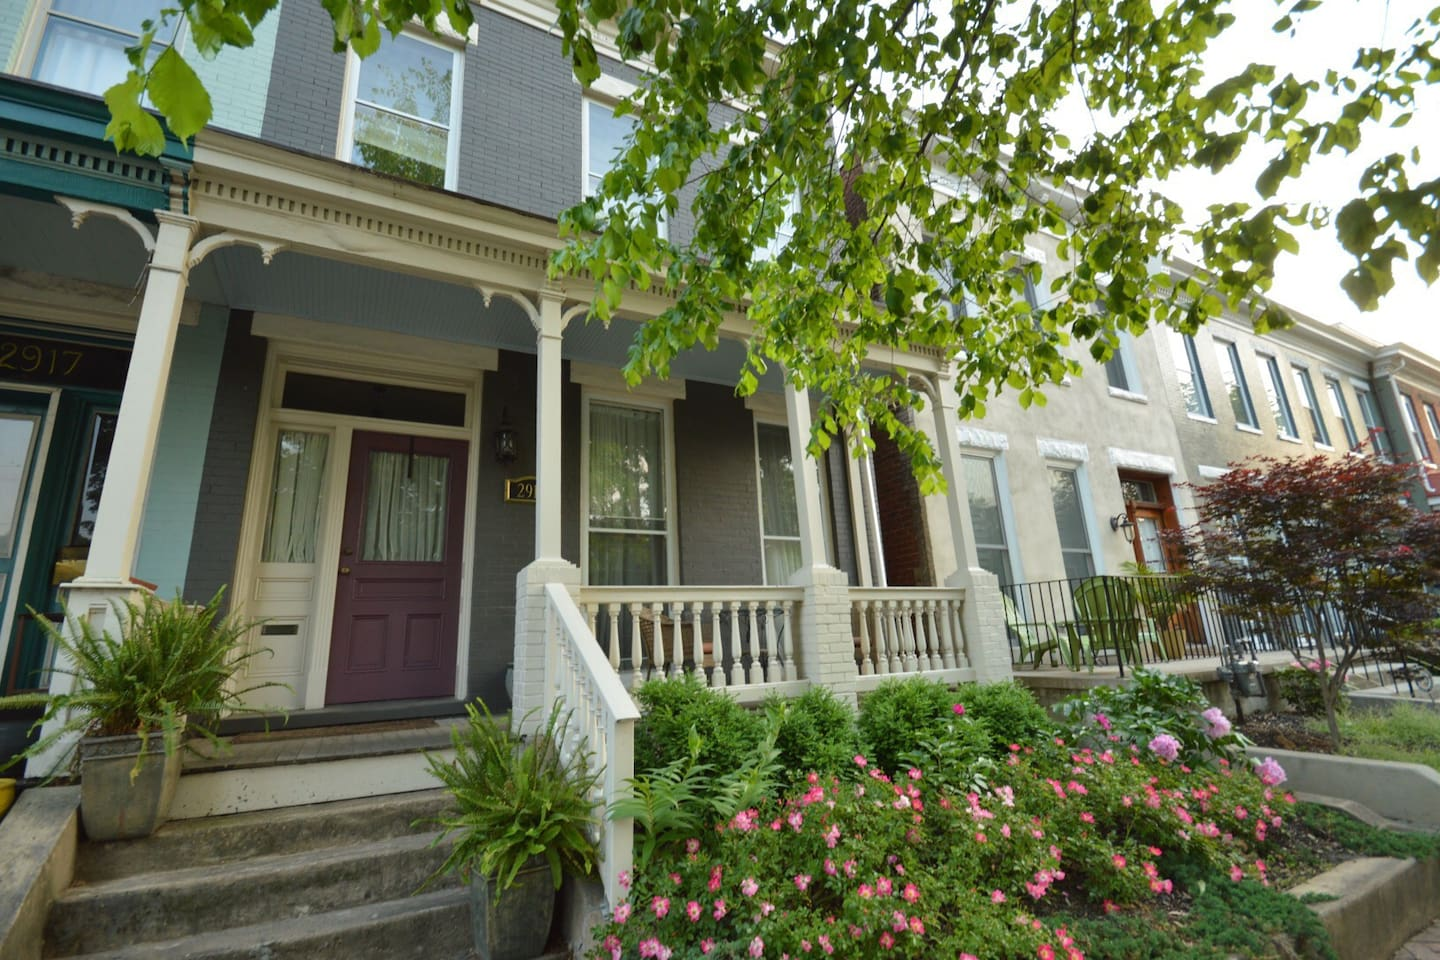 Historic home, one block north of Broad, within walking distance of some of Church Hill's most popular restaurants and bakeries.